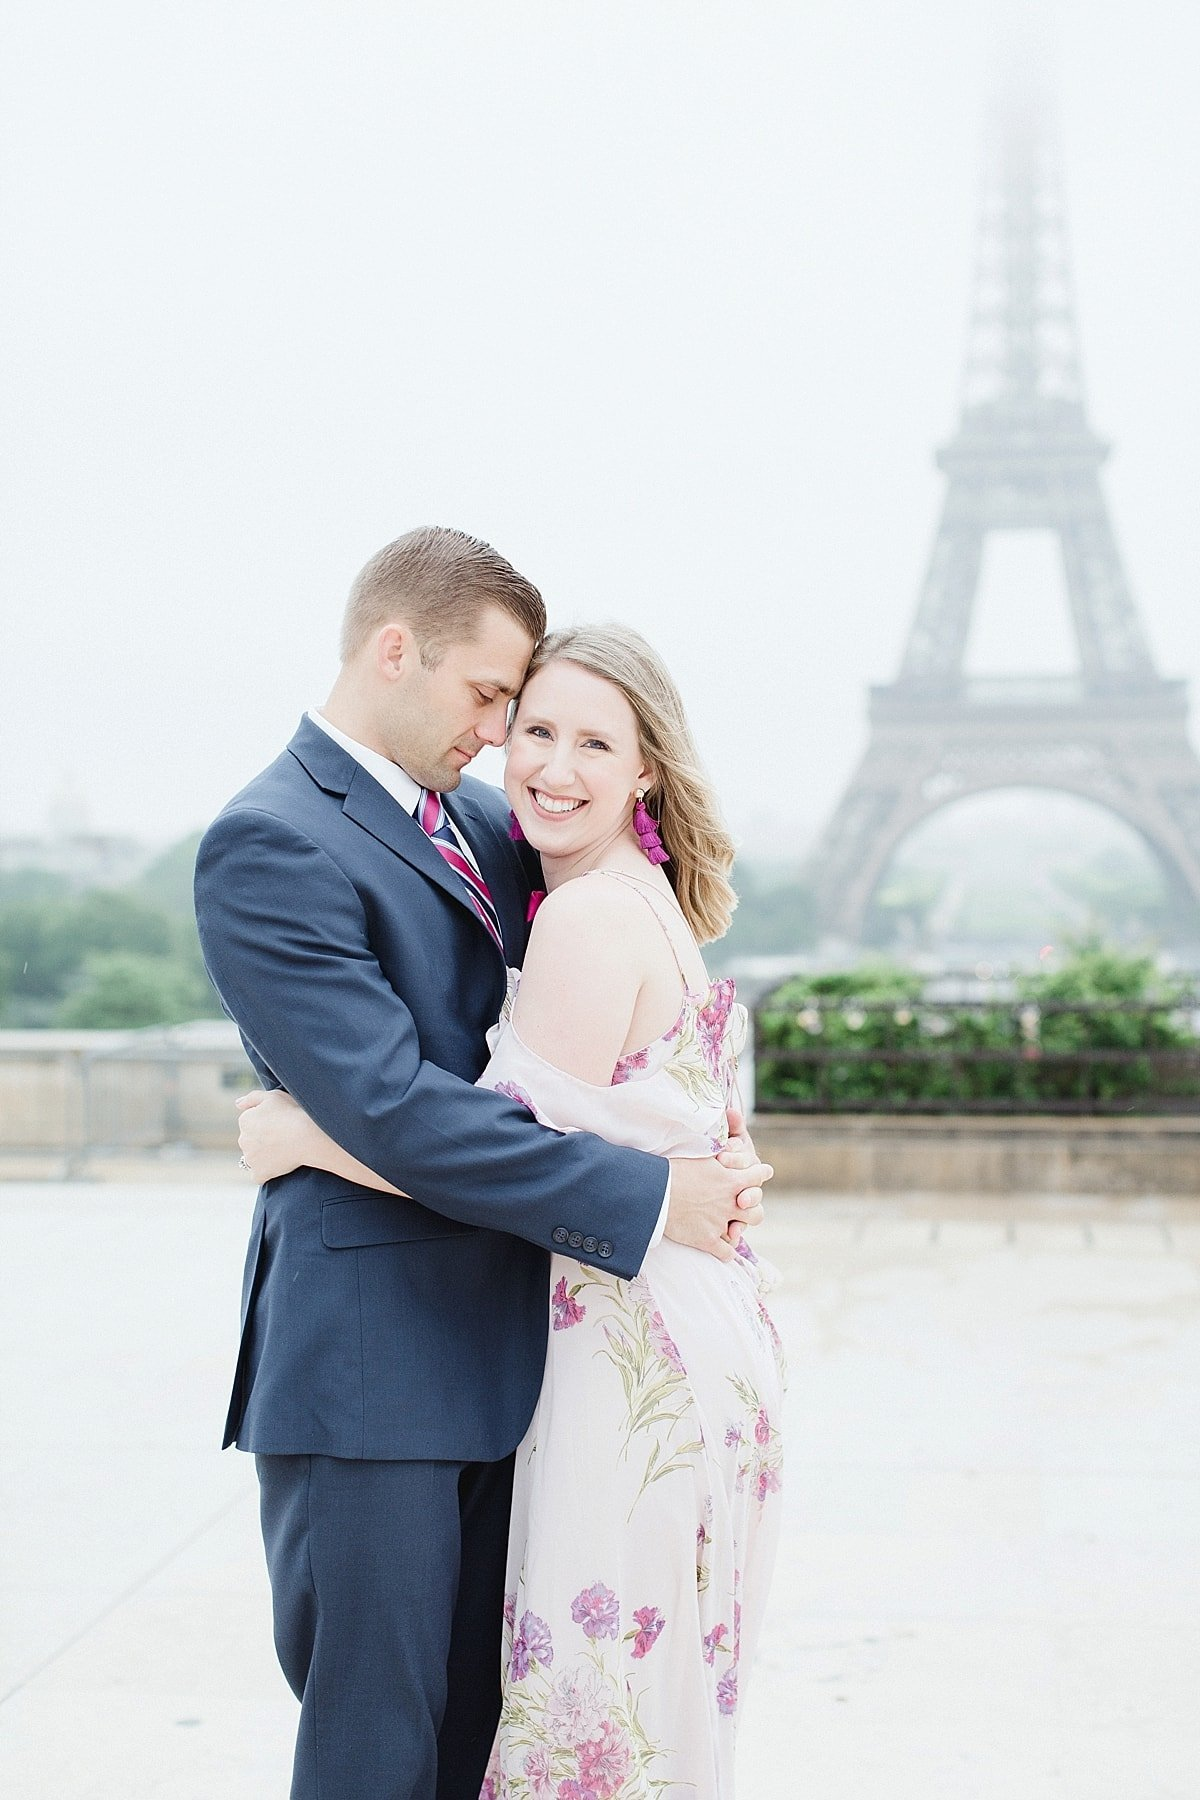 paris-photo-session-anniversary-alicia-yarrish-photography_04